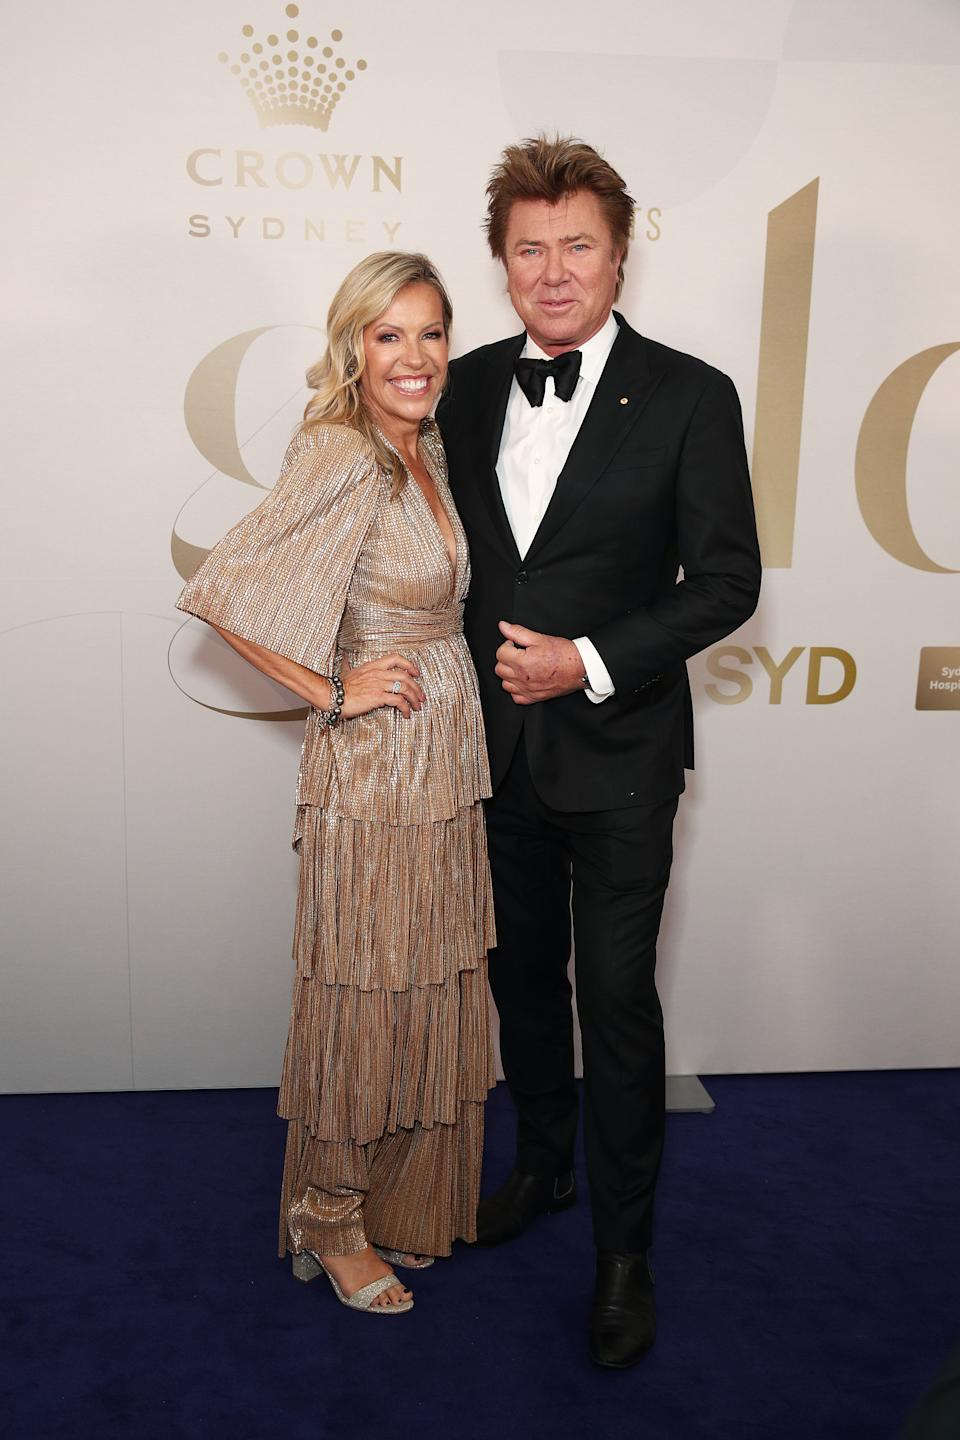 Nicola Dale wears a gold dress and Richard Wilkins wears a black tuxedo at the Gold Dinner 2021 on June 10, 2021 in Sydney, Australia